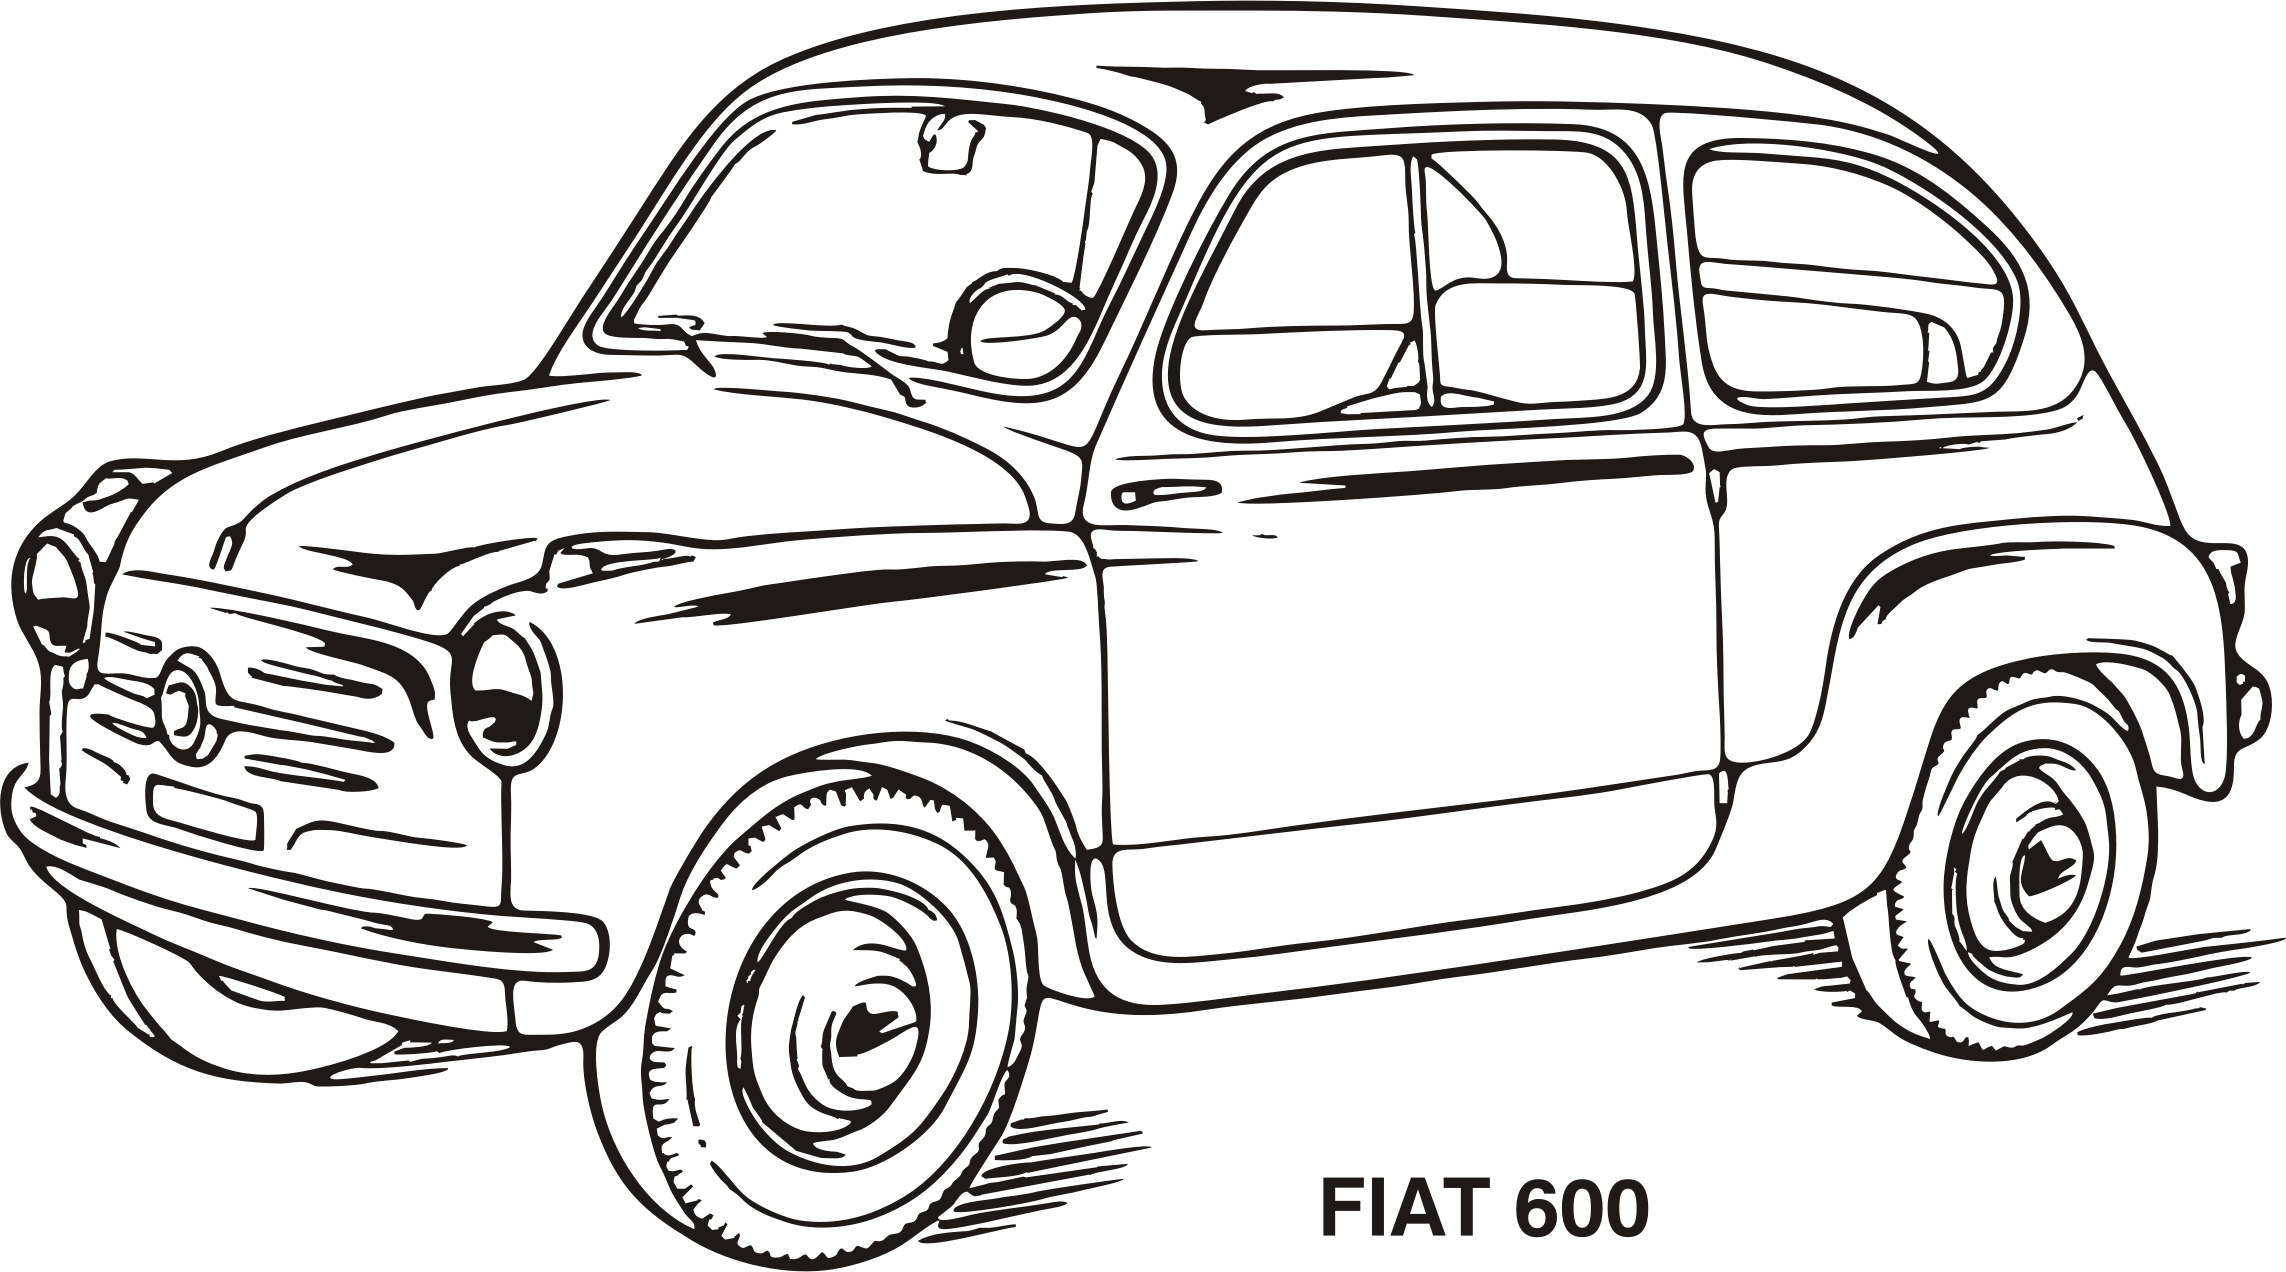 Fiat 600, year 1955 by Vanja